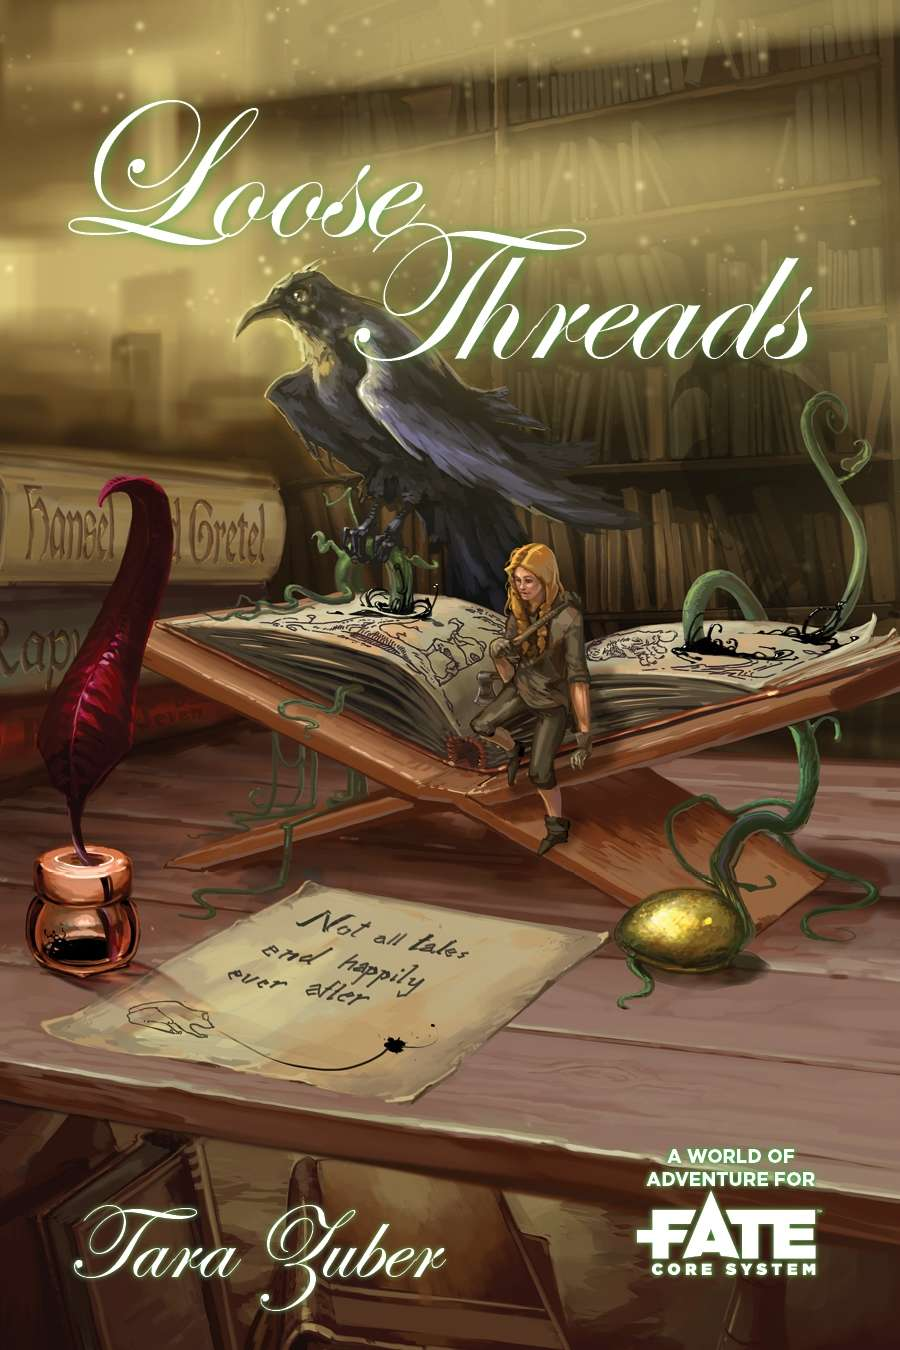 Loose Threads • A World of Adventure for Fate Core